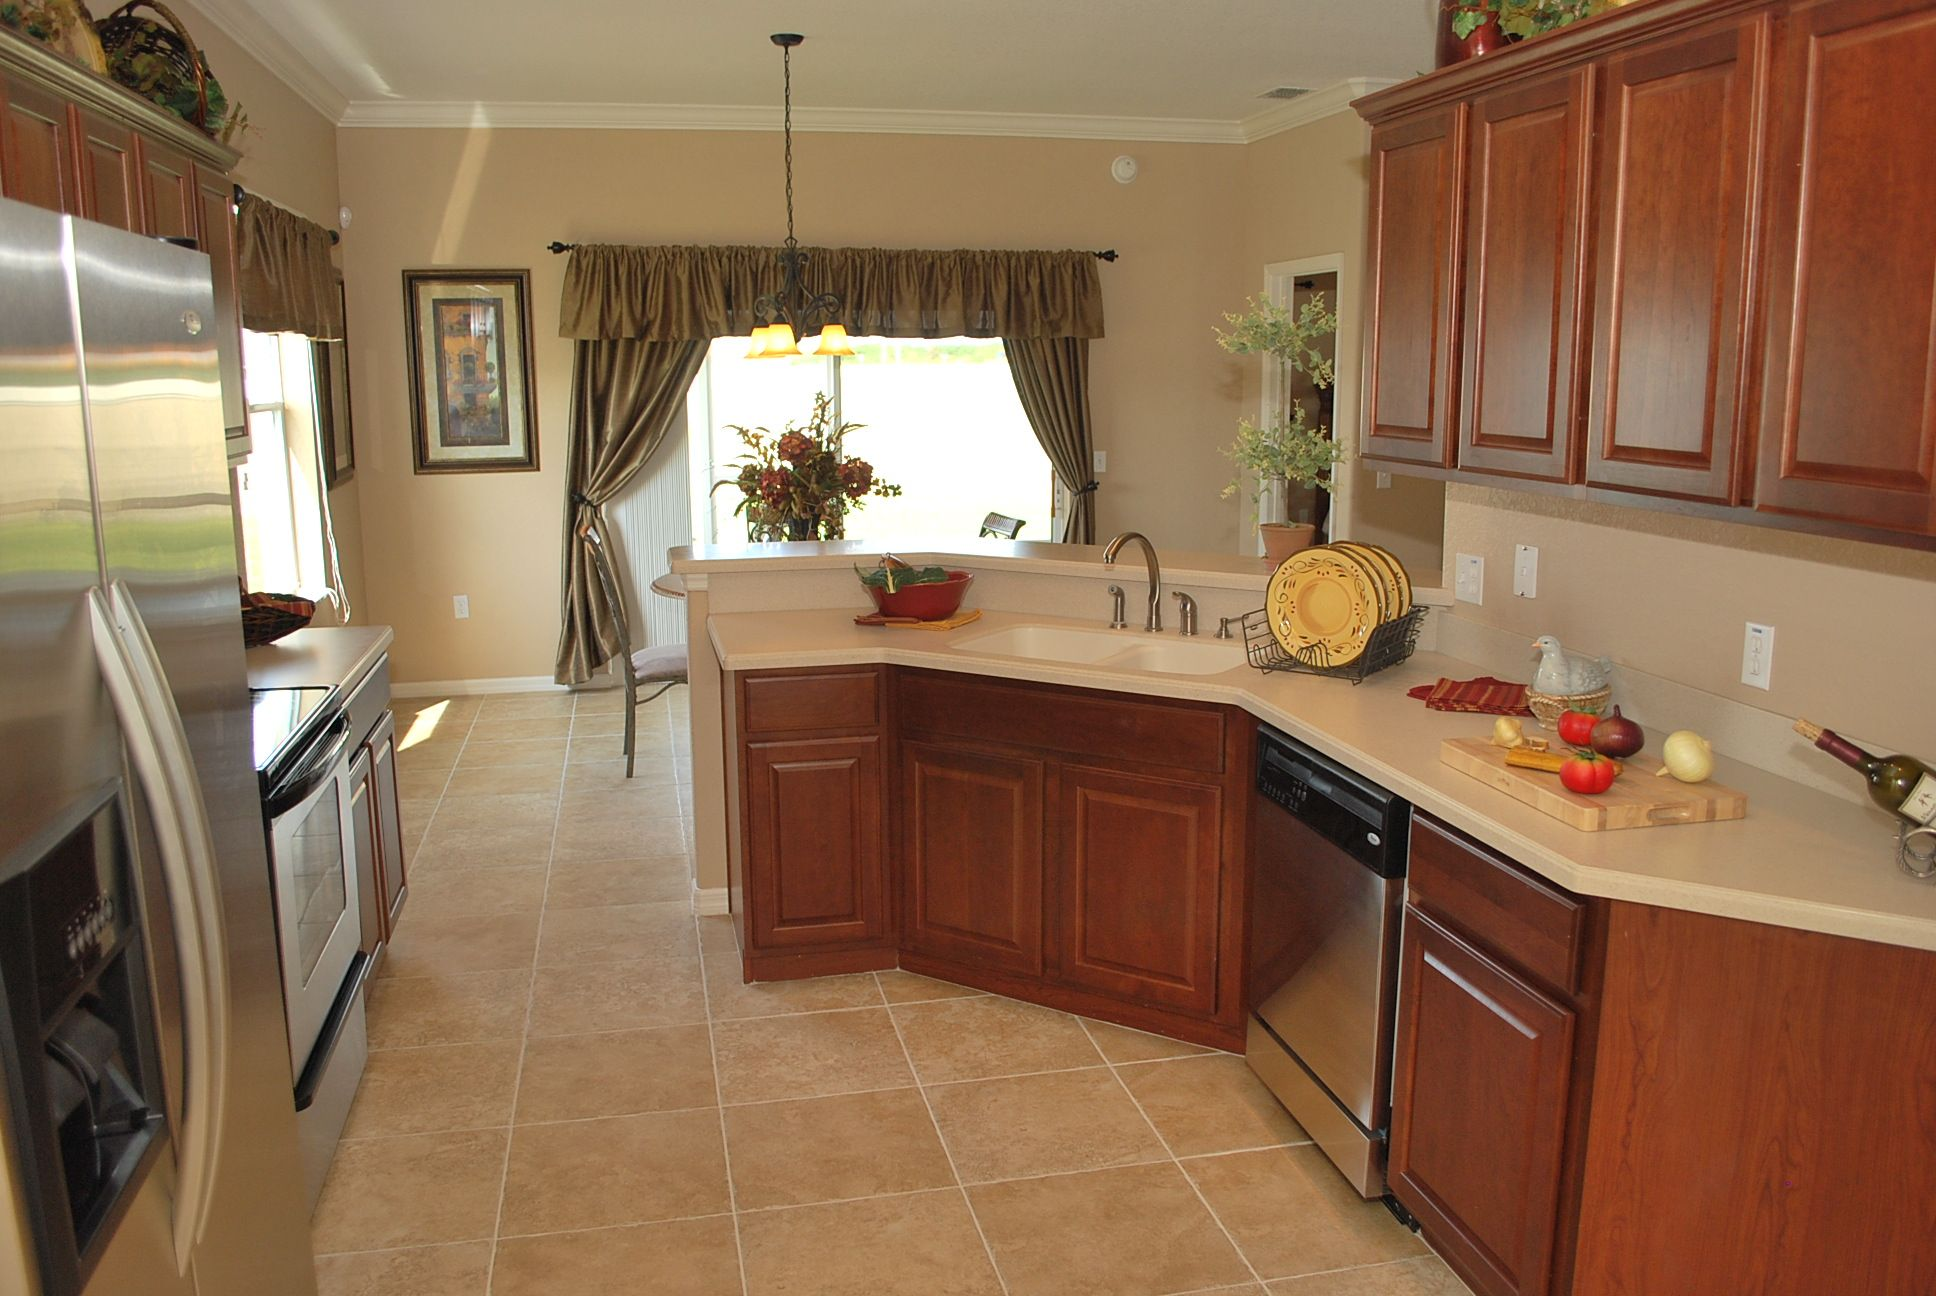 design your kitchen Wood cabinets Corian countertops stainless steel appliances and more Design your kitchen with